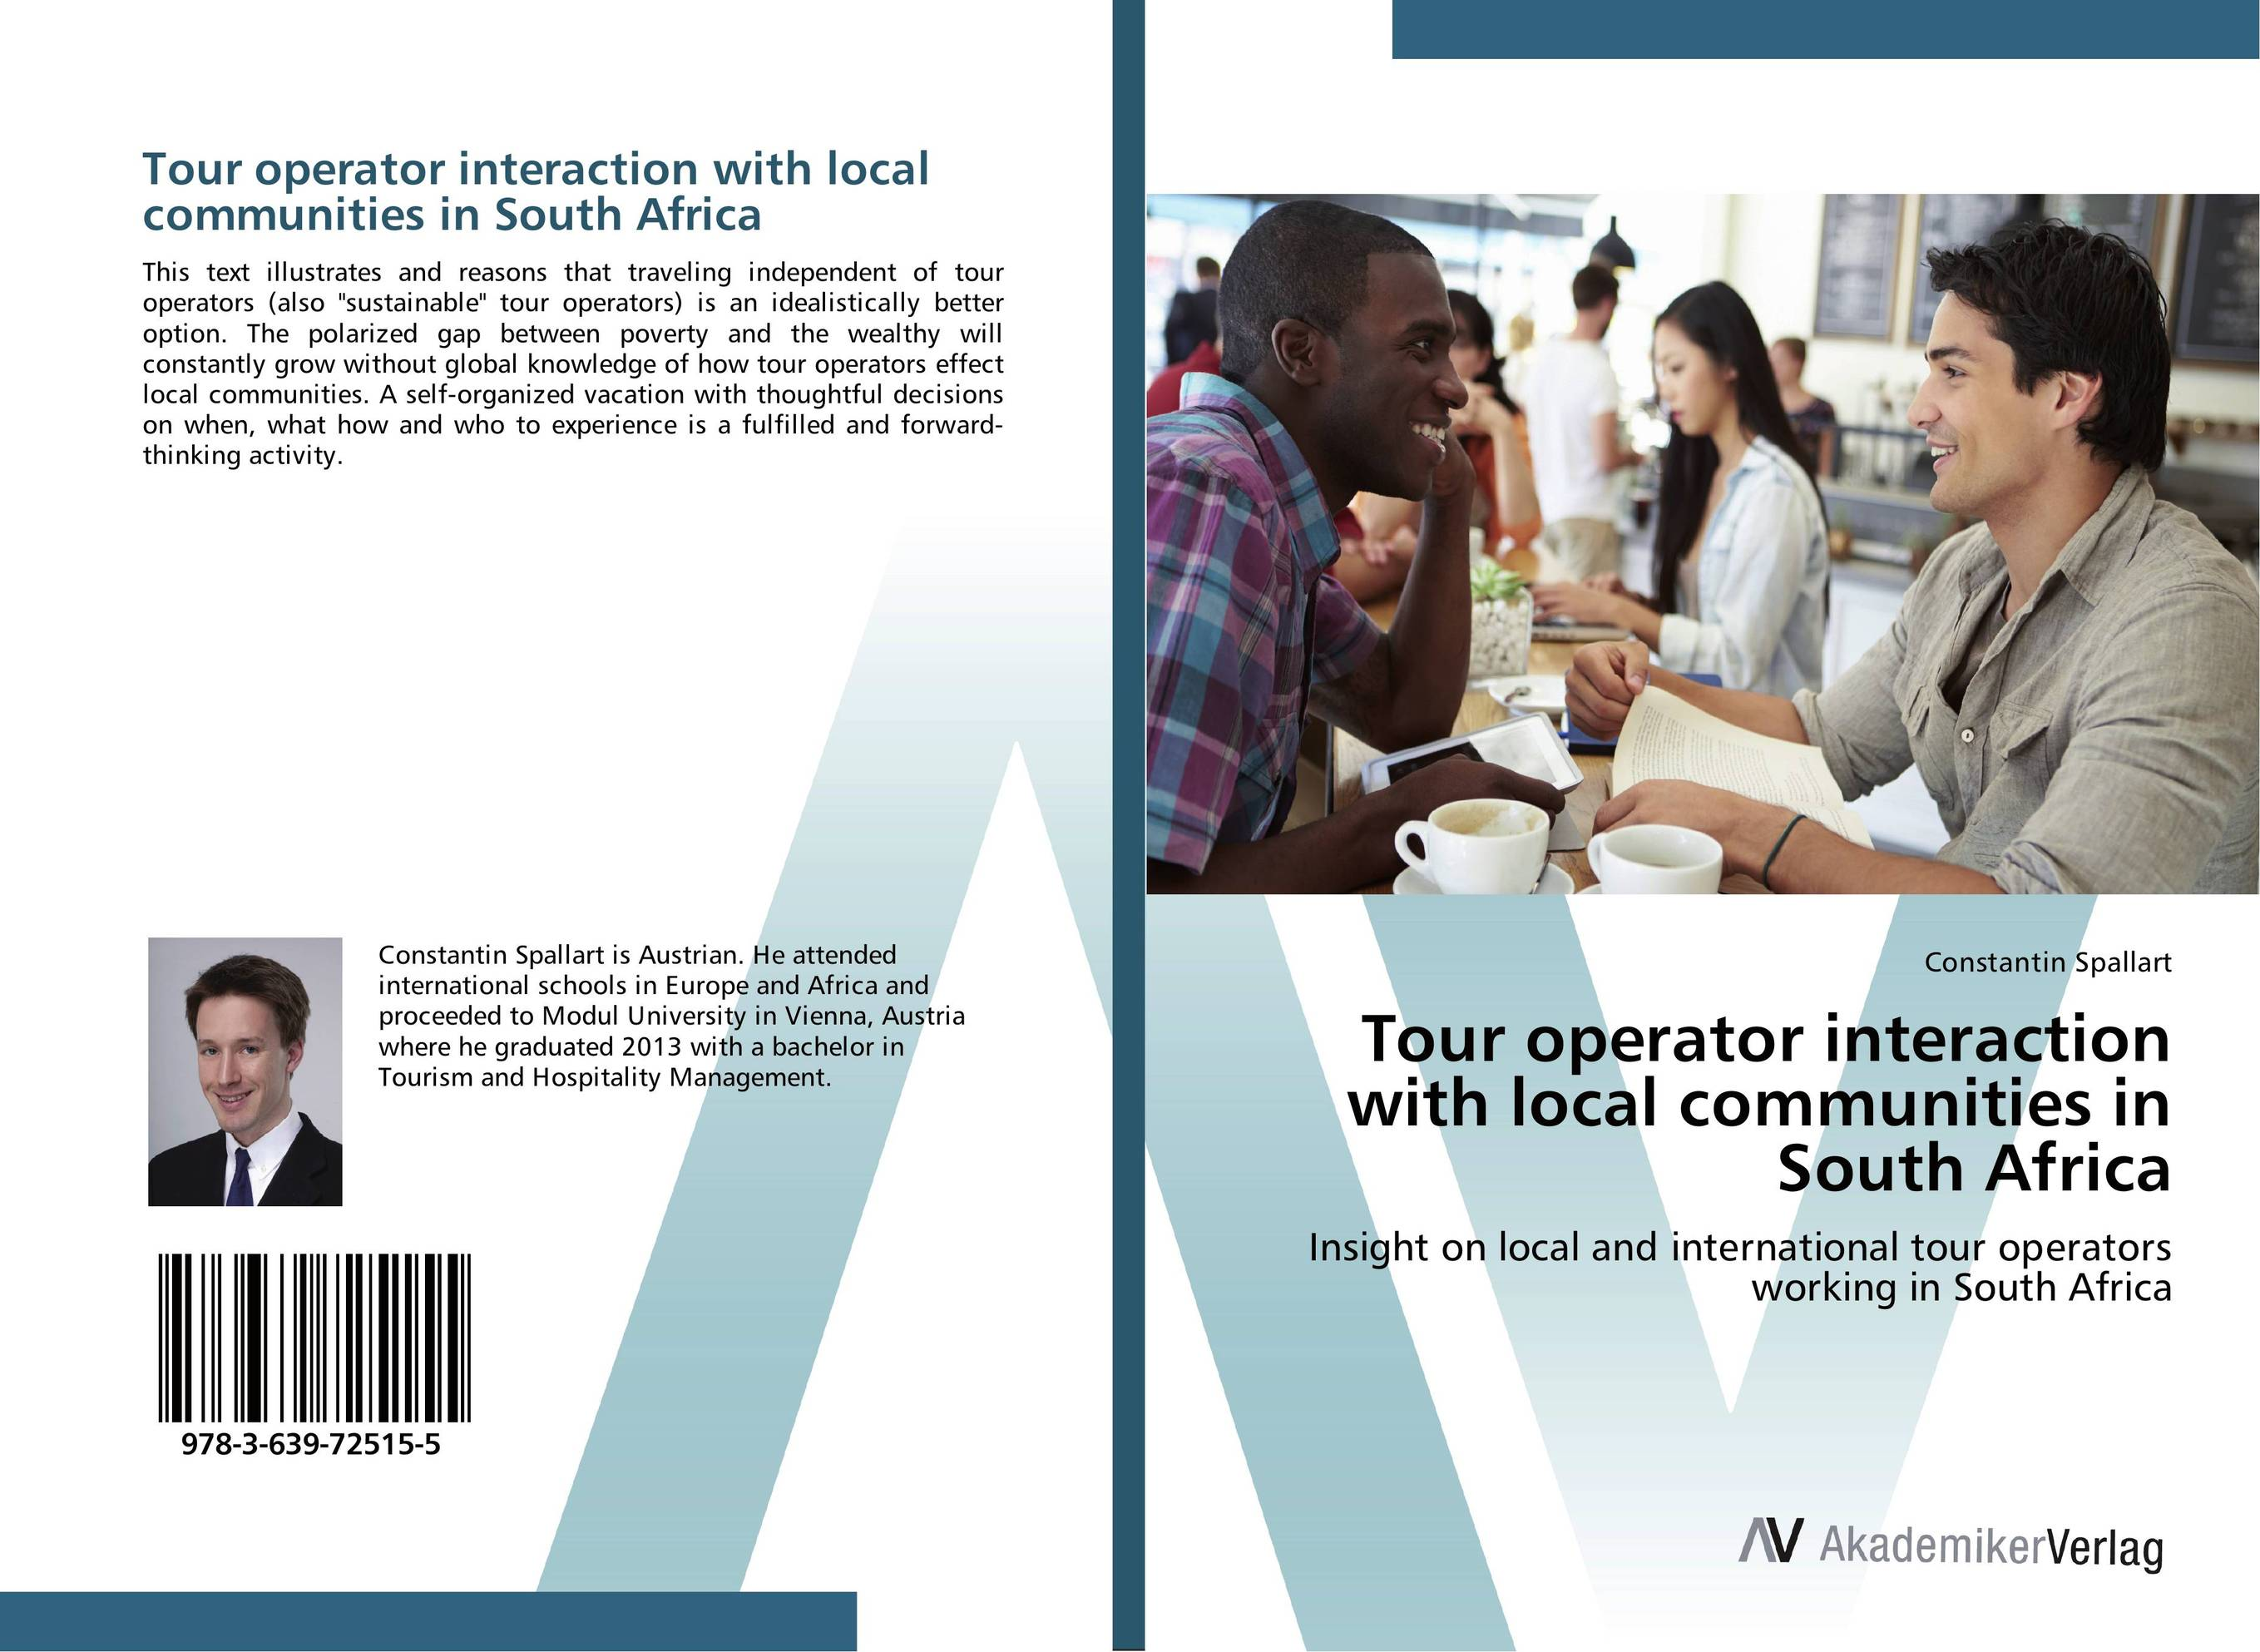 Tour operator interaction with local communities in South Africa